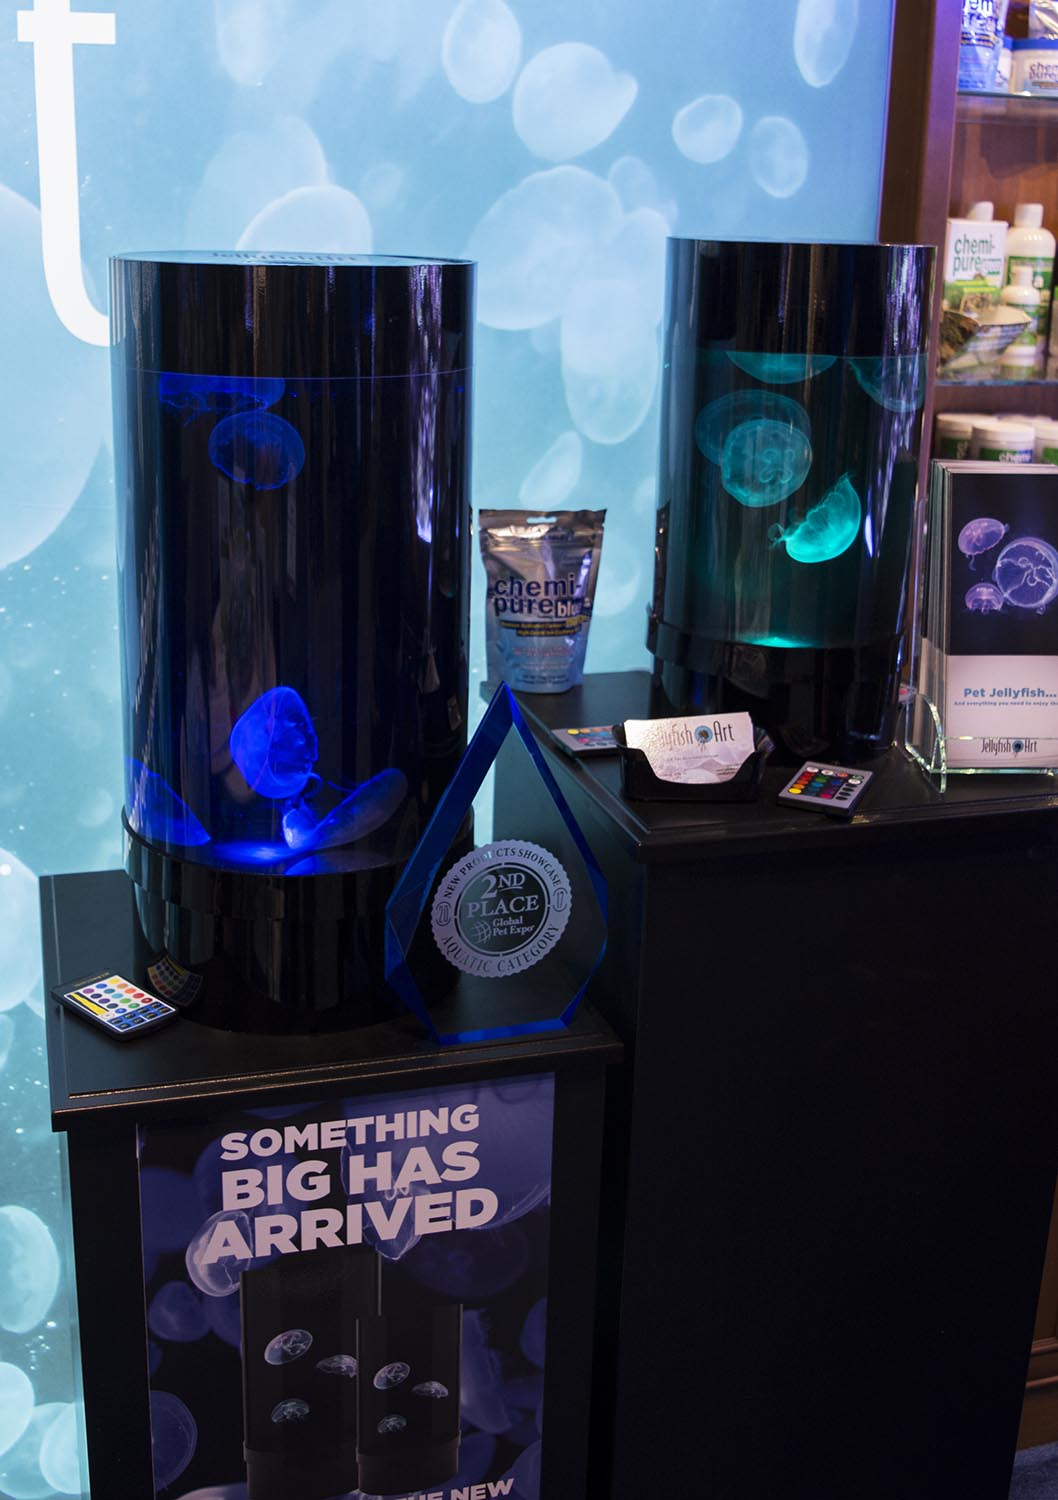 The new 5-gallon jellyfish tank from Jellyfish Art took second place in the new product showcase and seems to be a great upgrade from the smaller original design